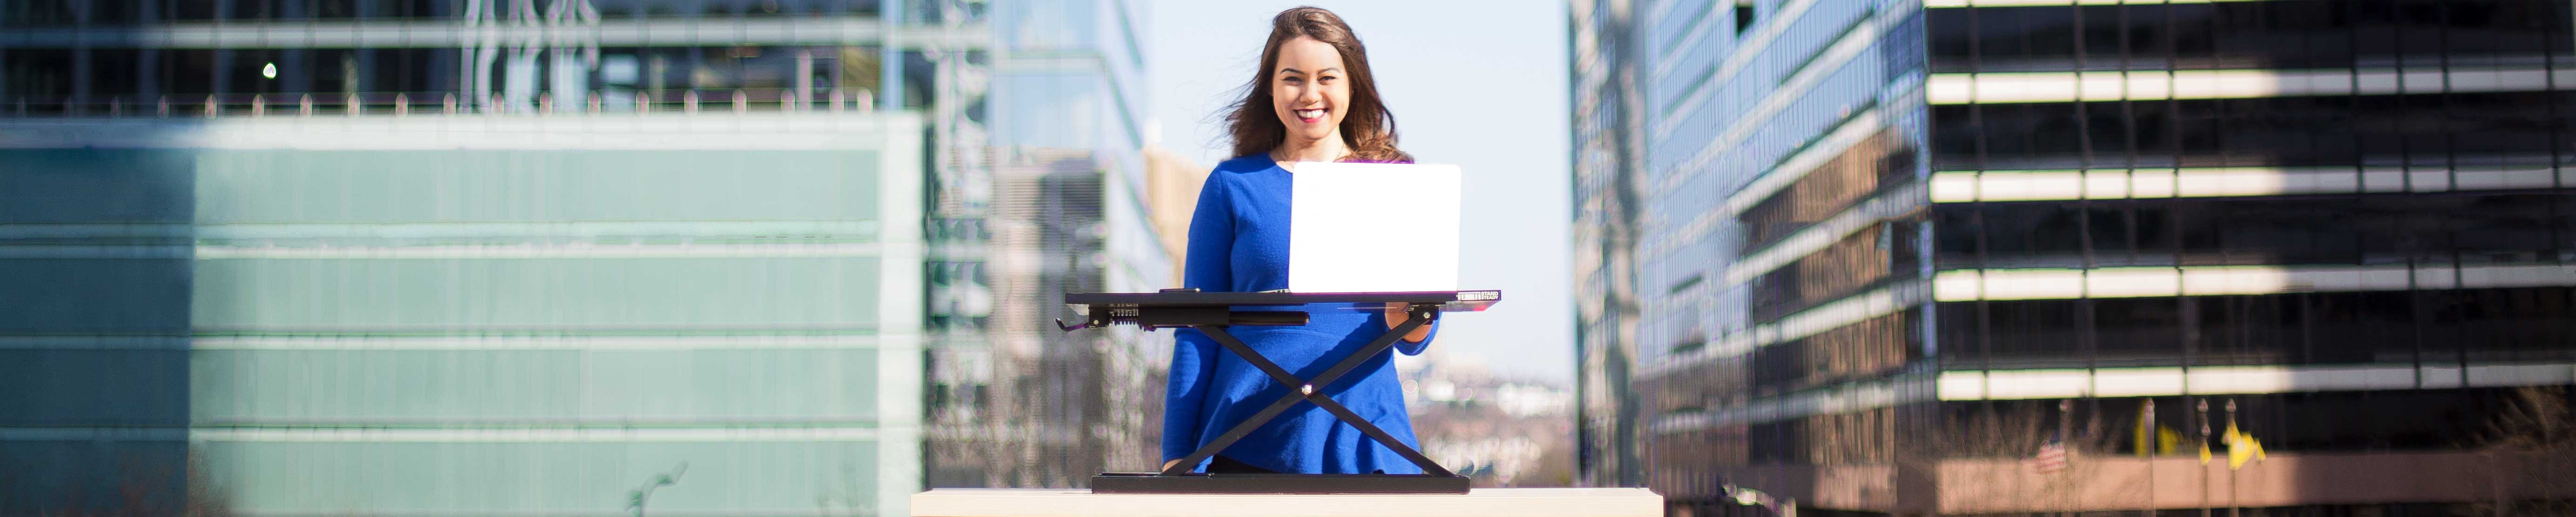 X-Elite Pro Standing Desk in the City